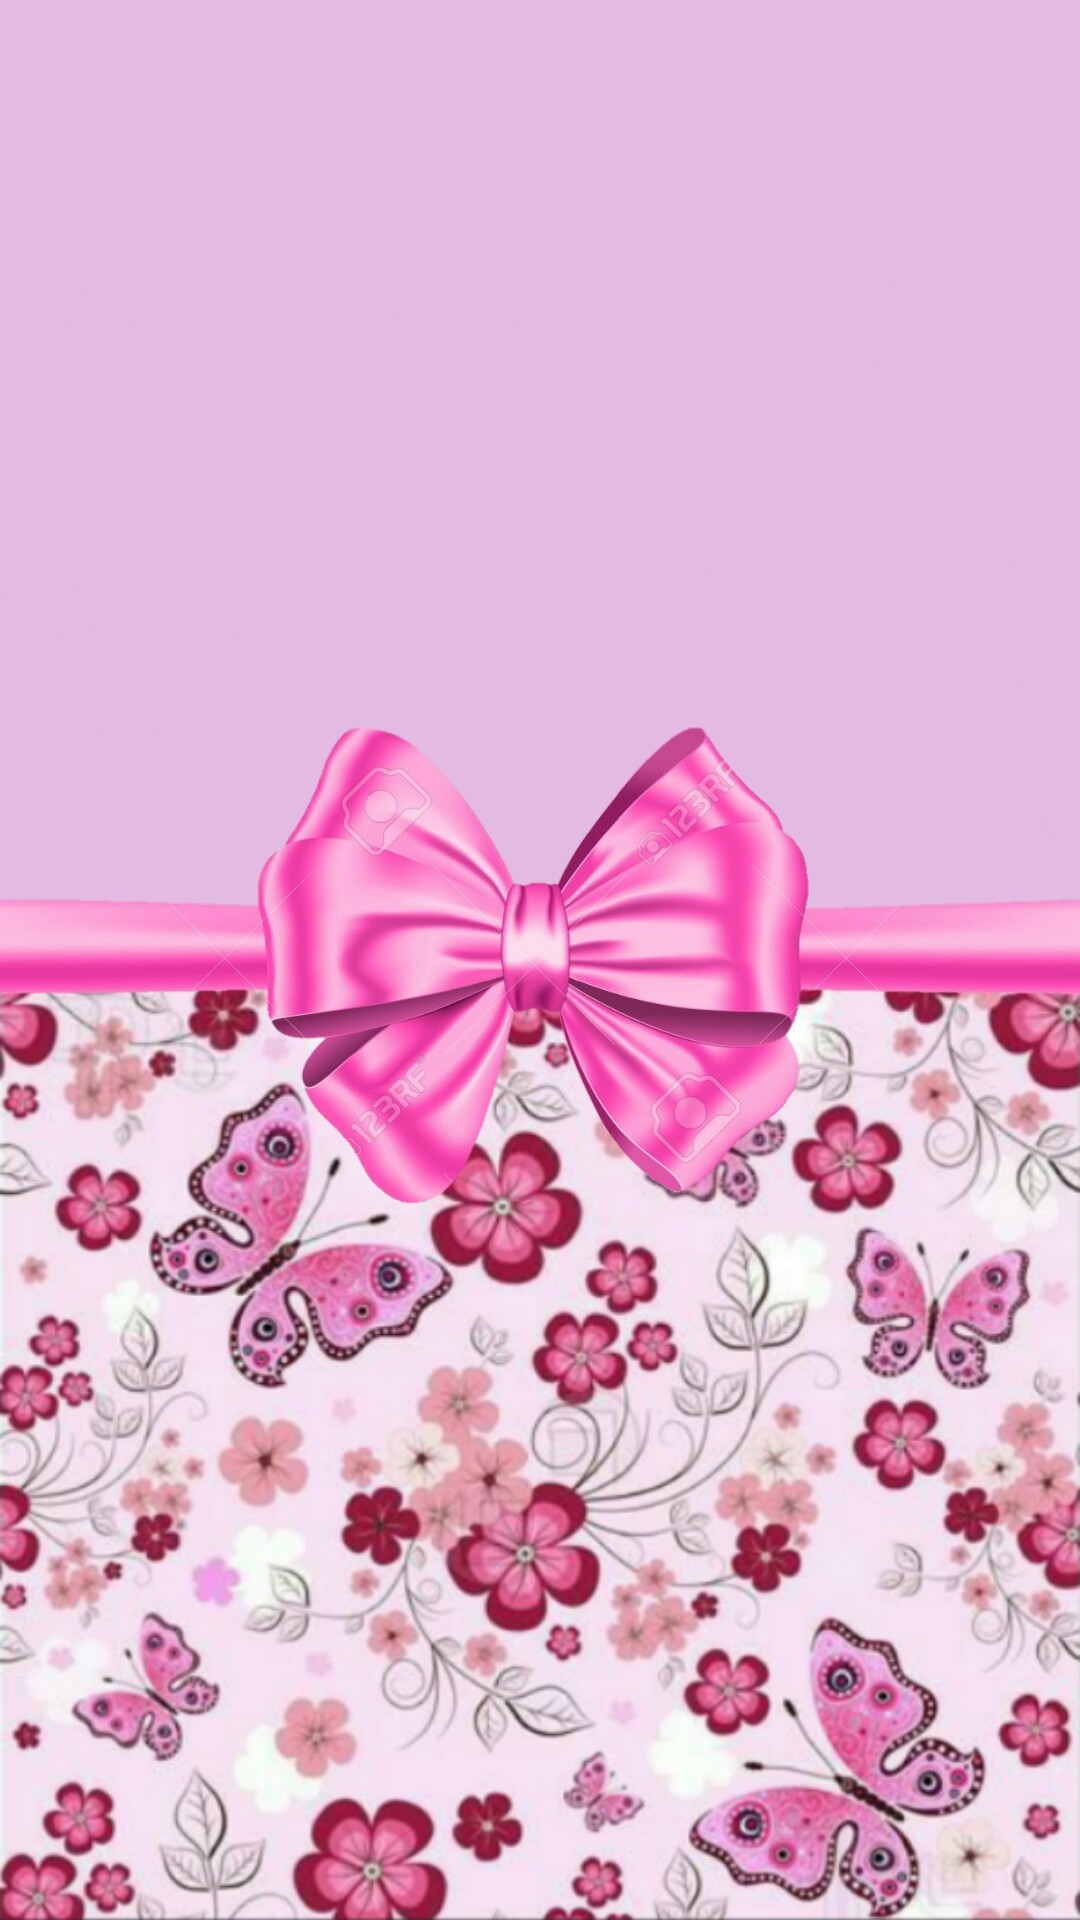 Purple and pink with flowers and bow